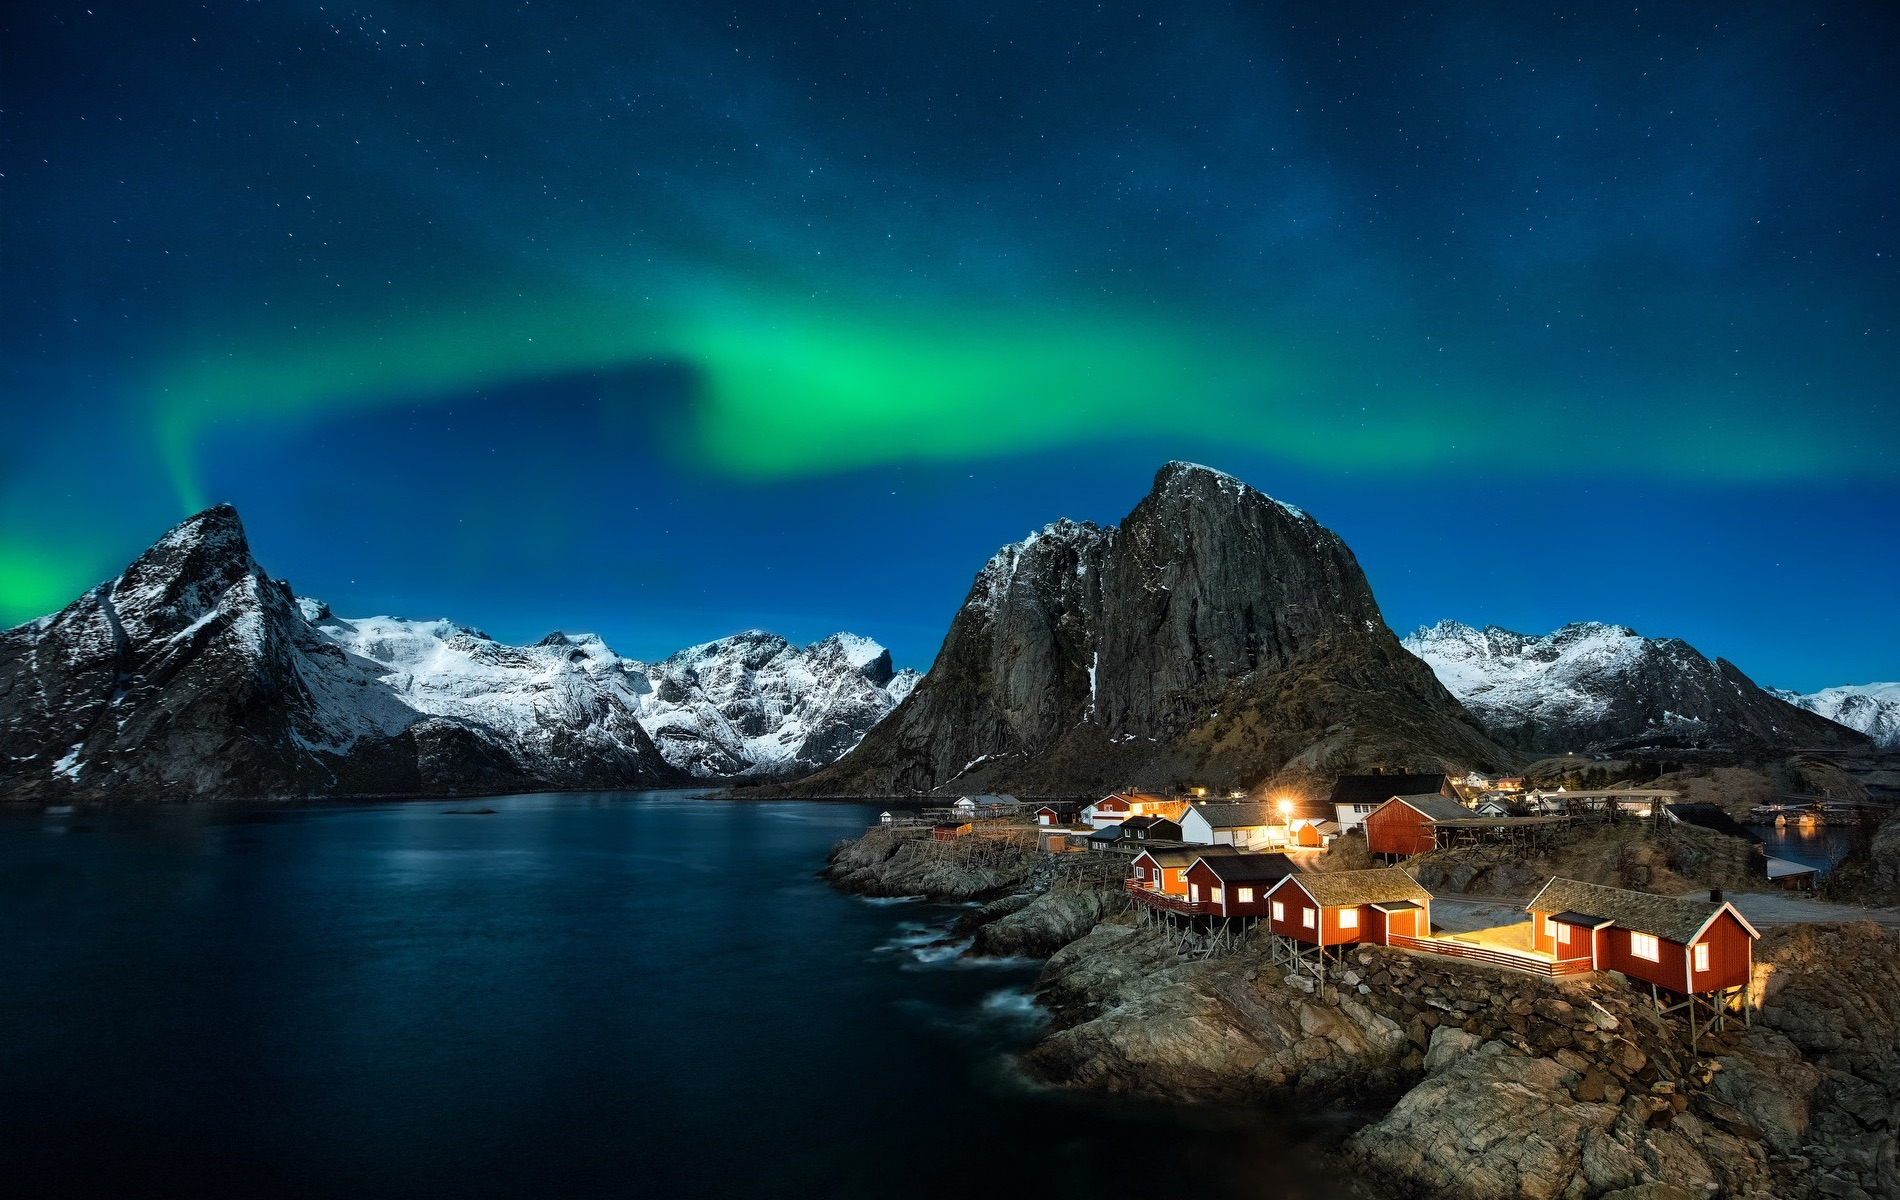 VIE magazine blog webcams at famous places Lofoten Islands in Norway with Aurora Borealis